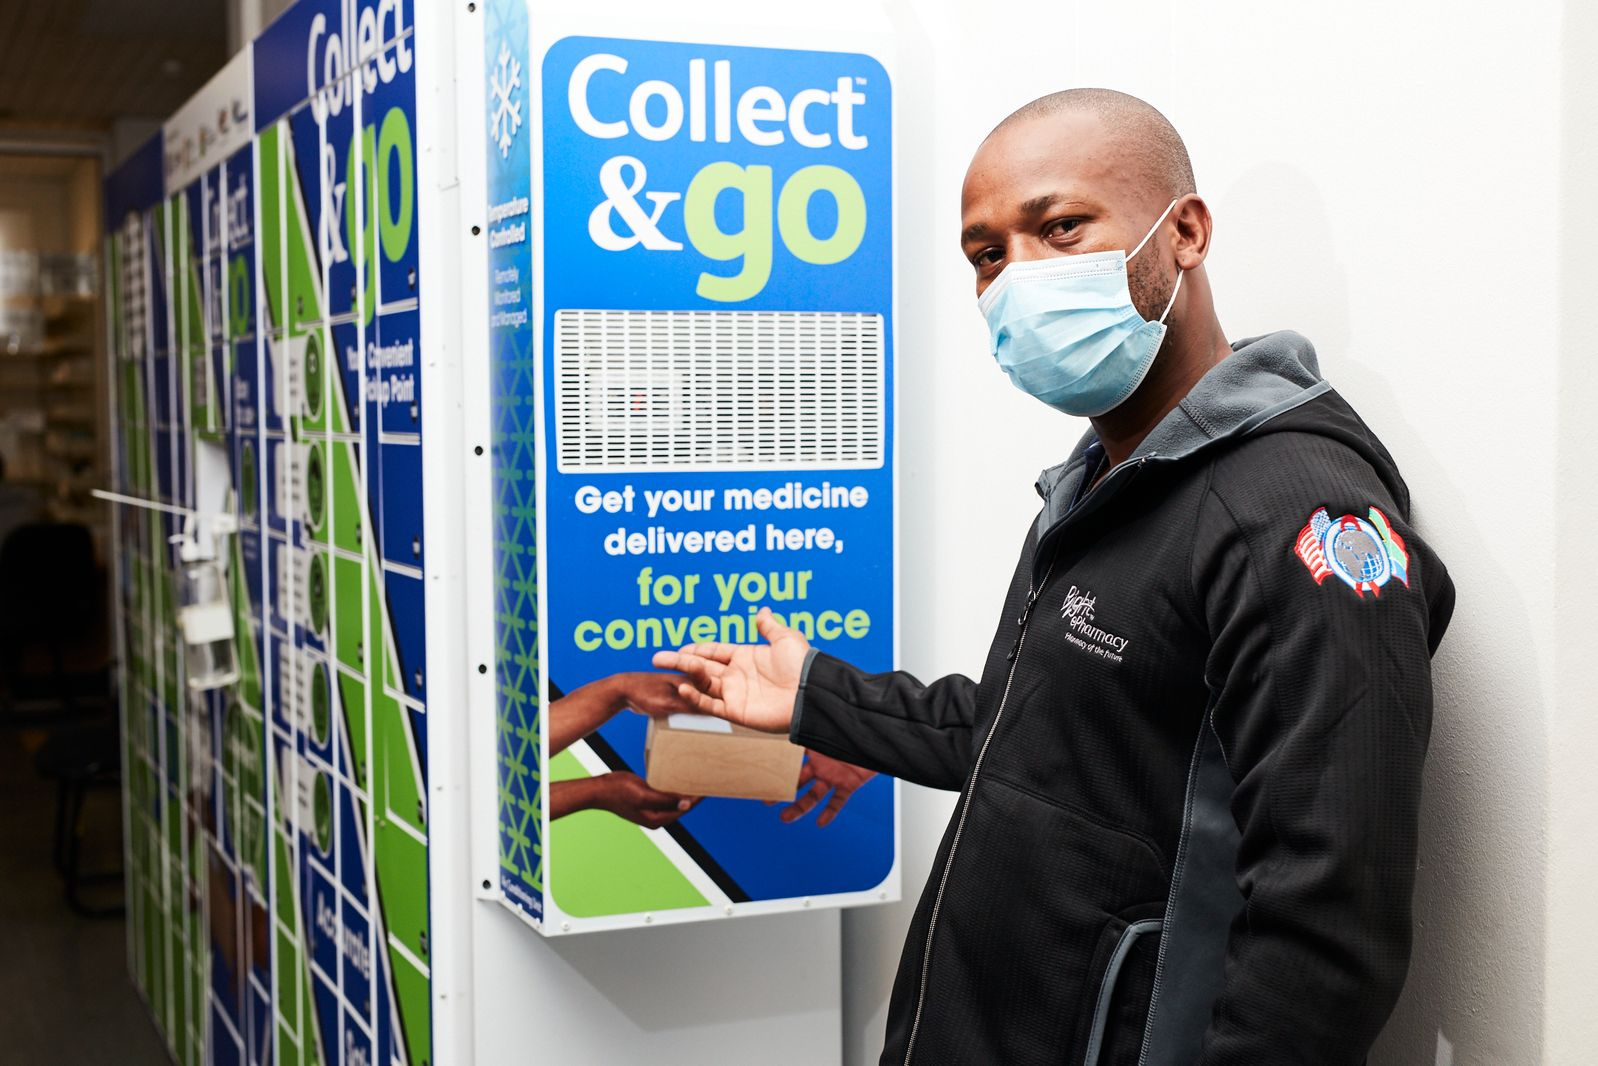 Smart locker sites for safe medicine collection launched in Mpumalanga